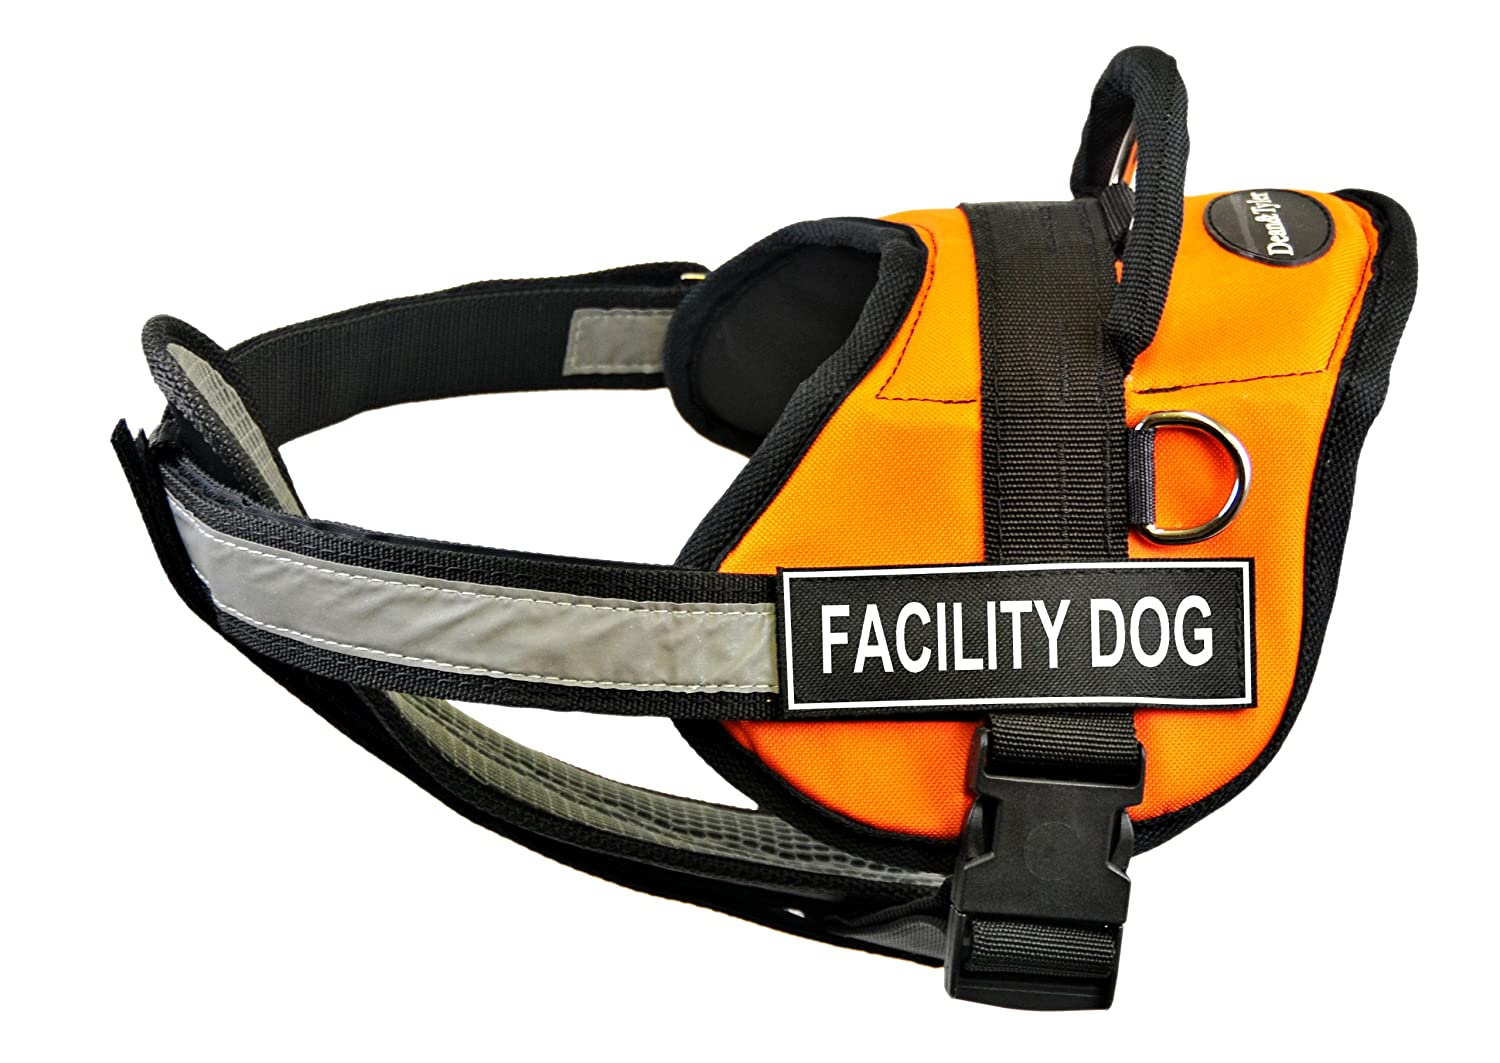 Dean & Tyler 25-Inch to 34-Inch Facility Dog Harness with Padded Reflective Chest Straps, Small, orange Black